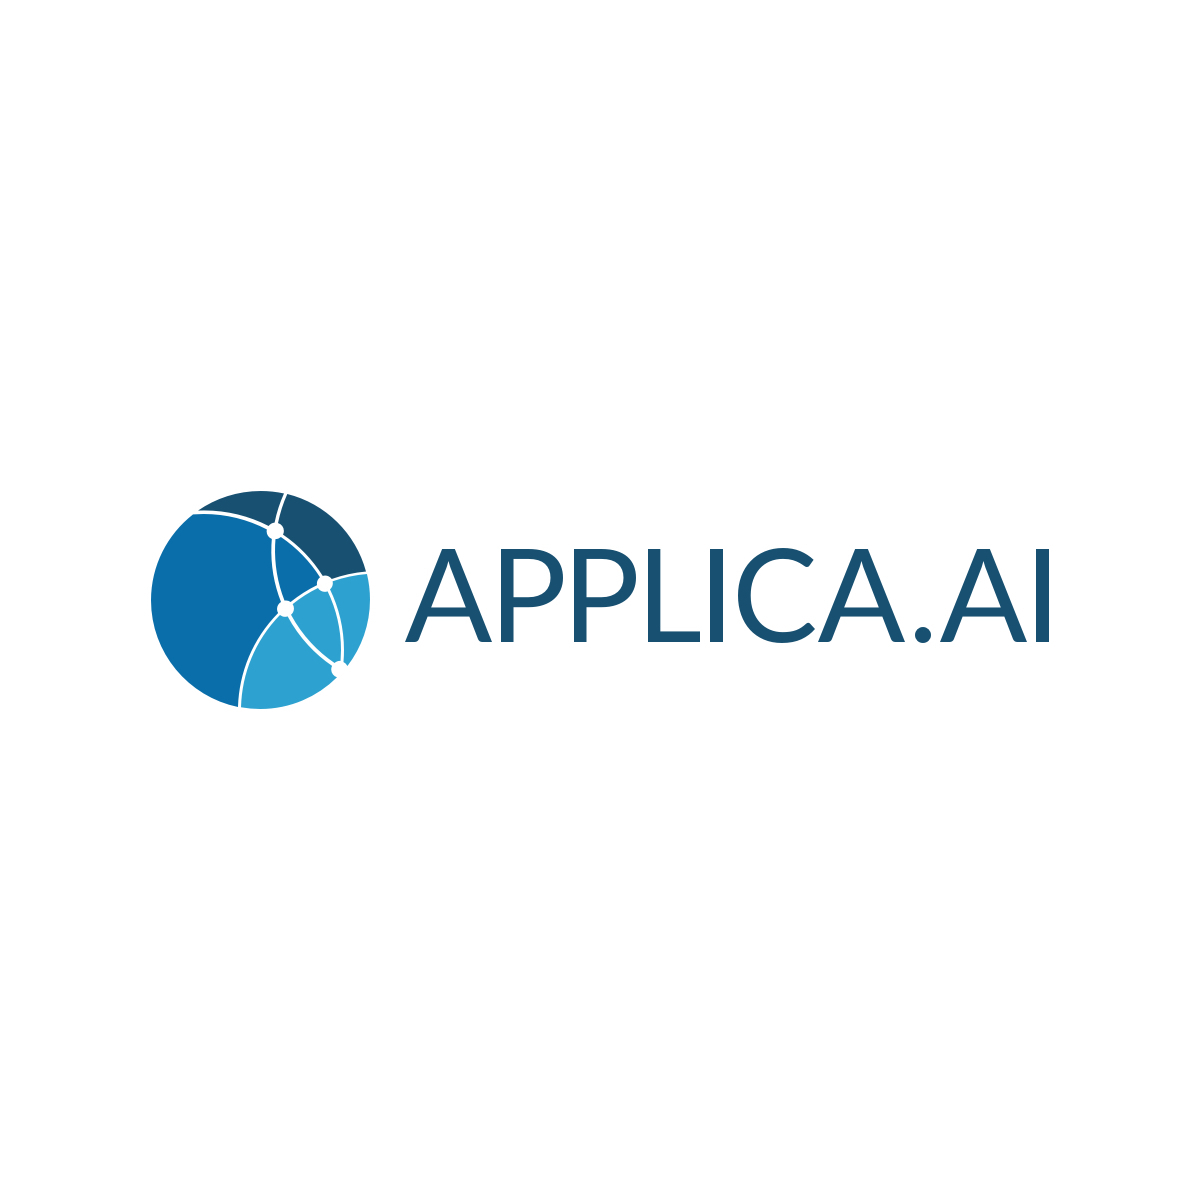 Applica.ai, UiPath Partner